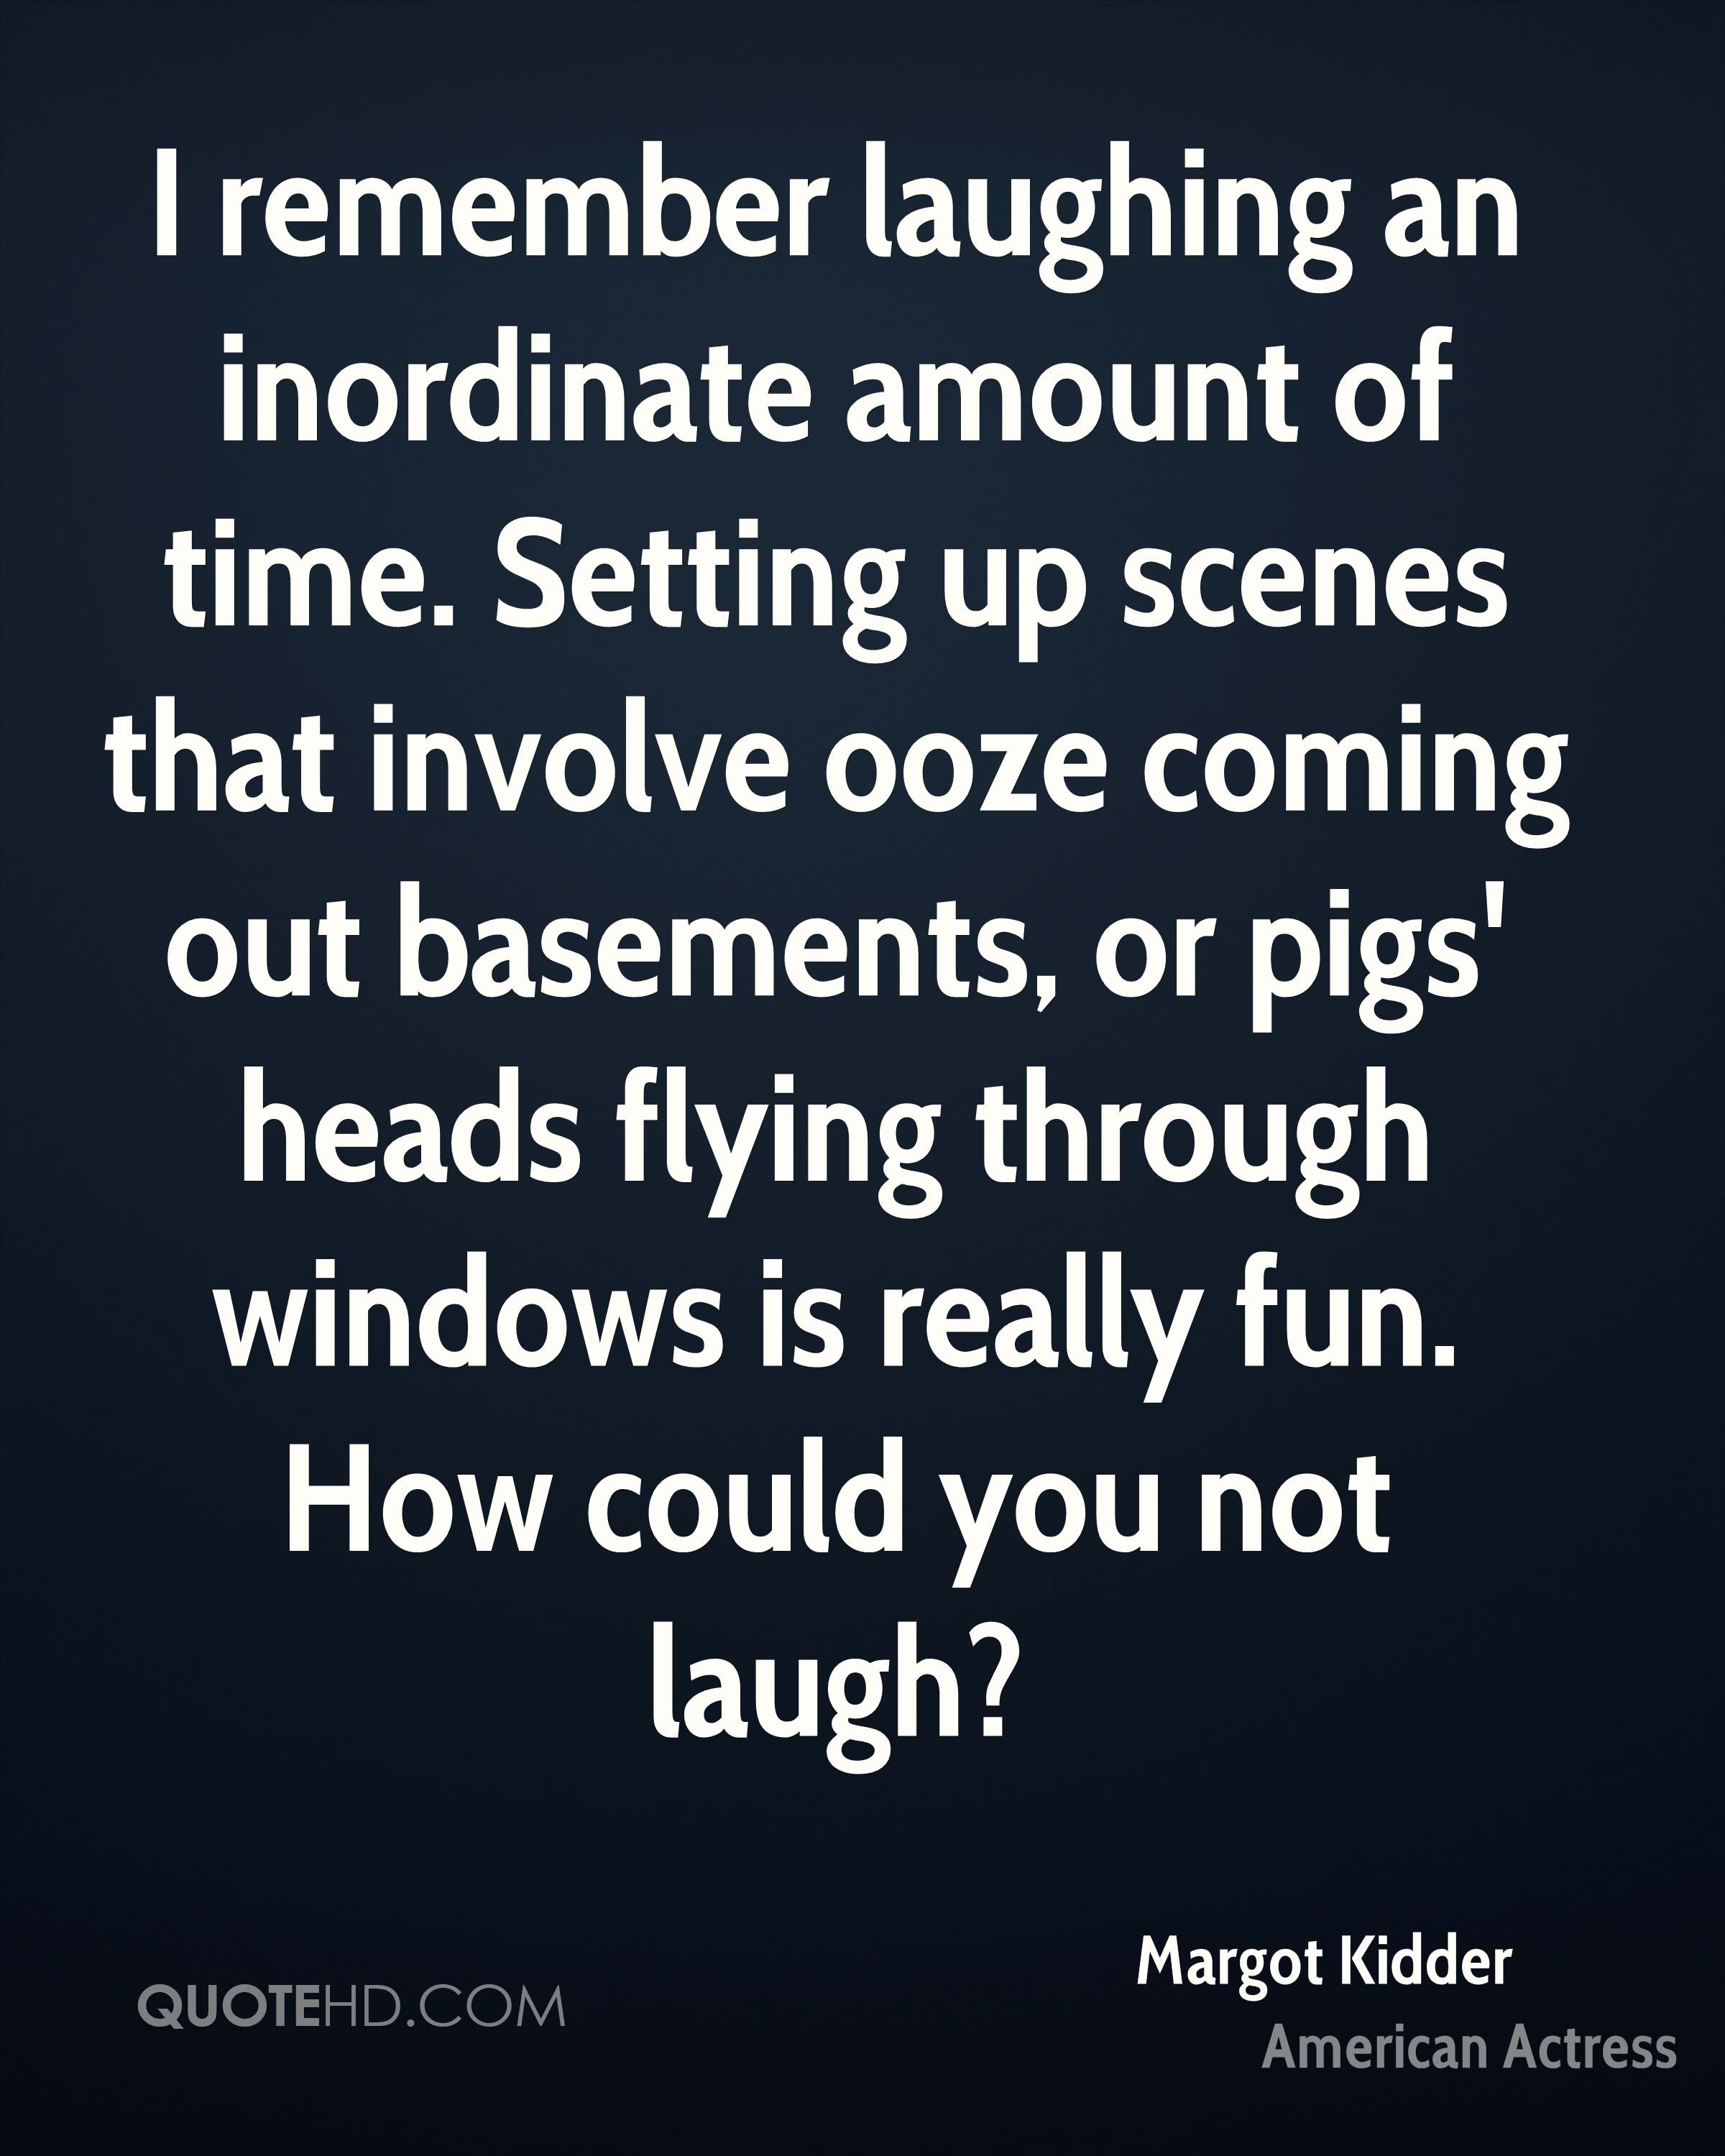 I remember laughing an inordinate amount of time. Setting up scenes that involve ooze coming out basements, or pigs' heads flying through windows is really fun. How could you not laugh?